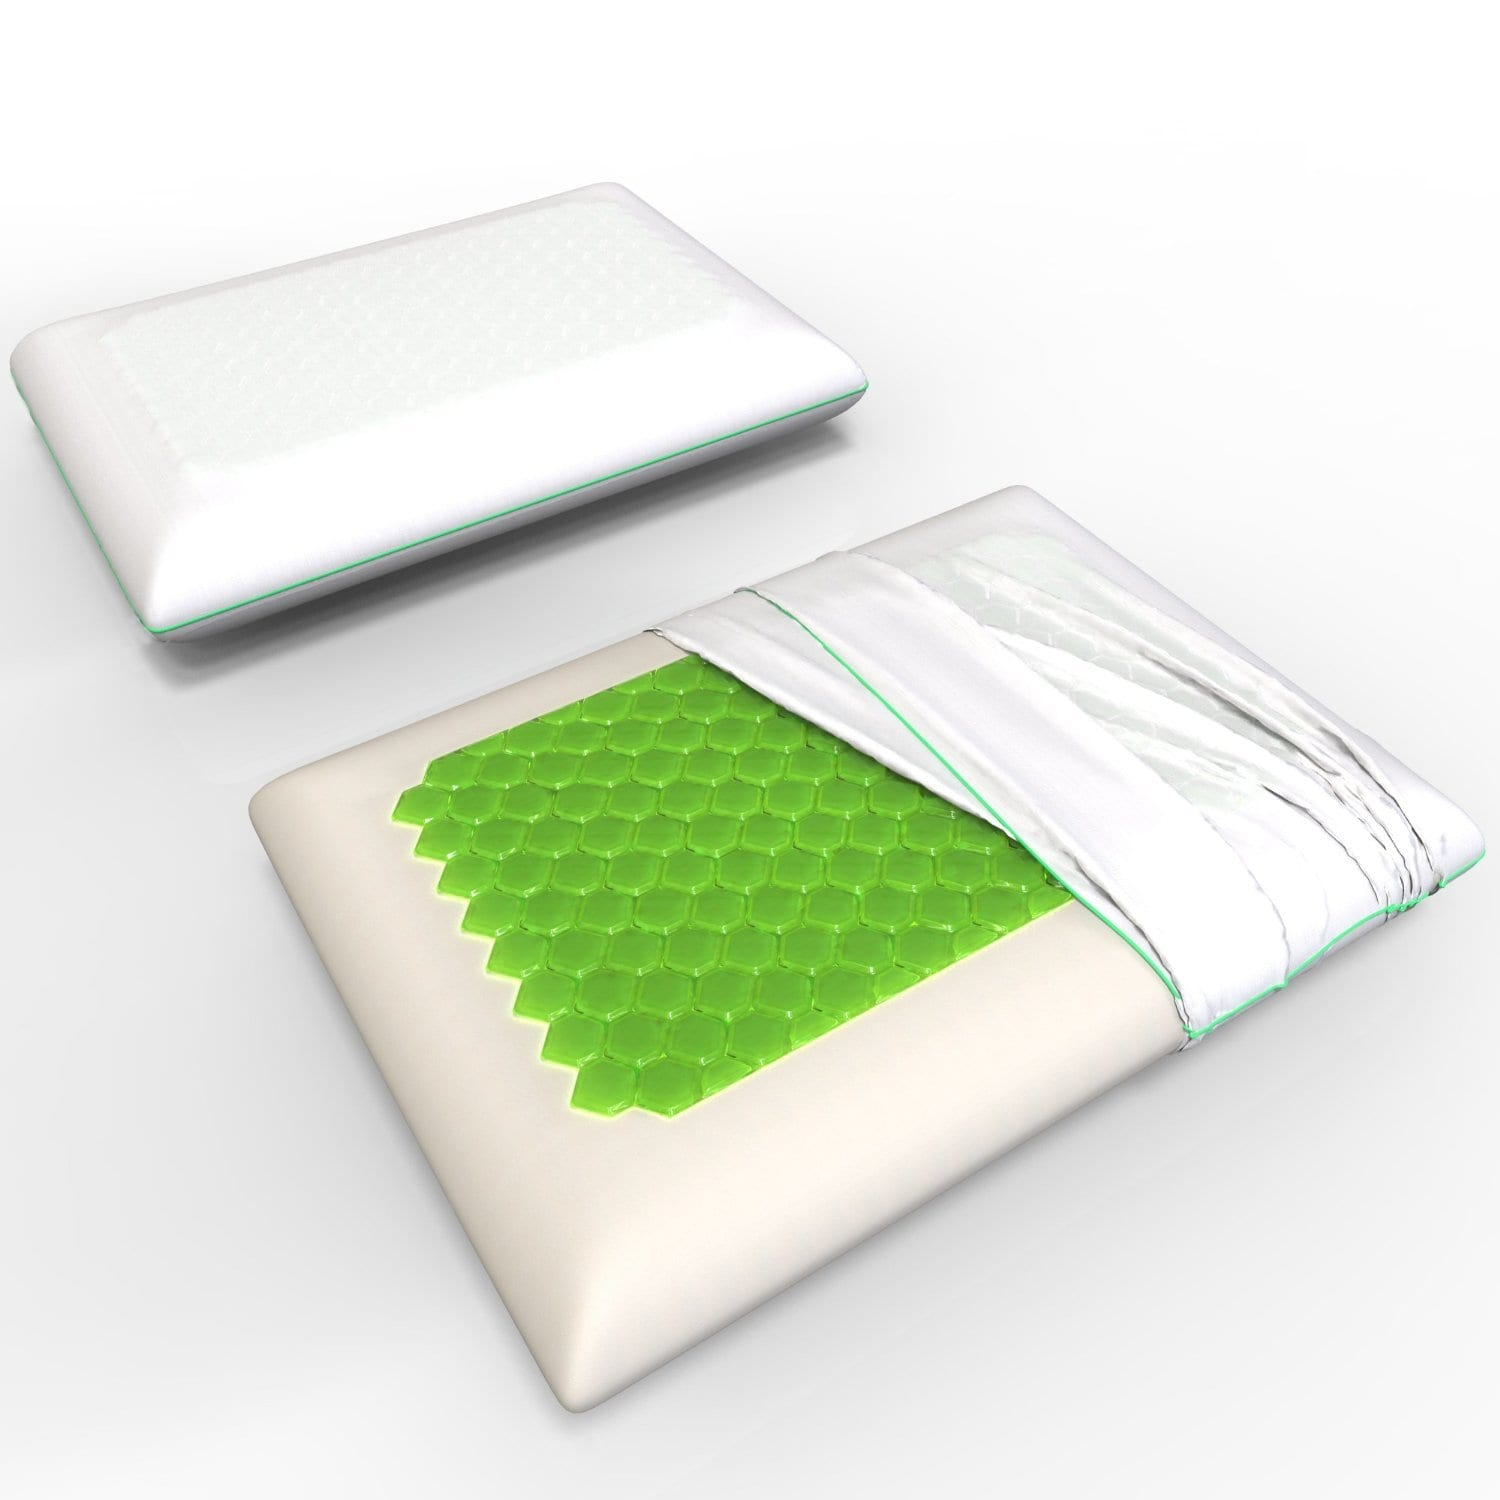 Equinox International Gel Pillow Review by www.snoremagazine.com